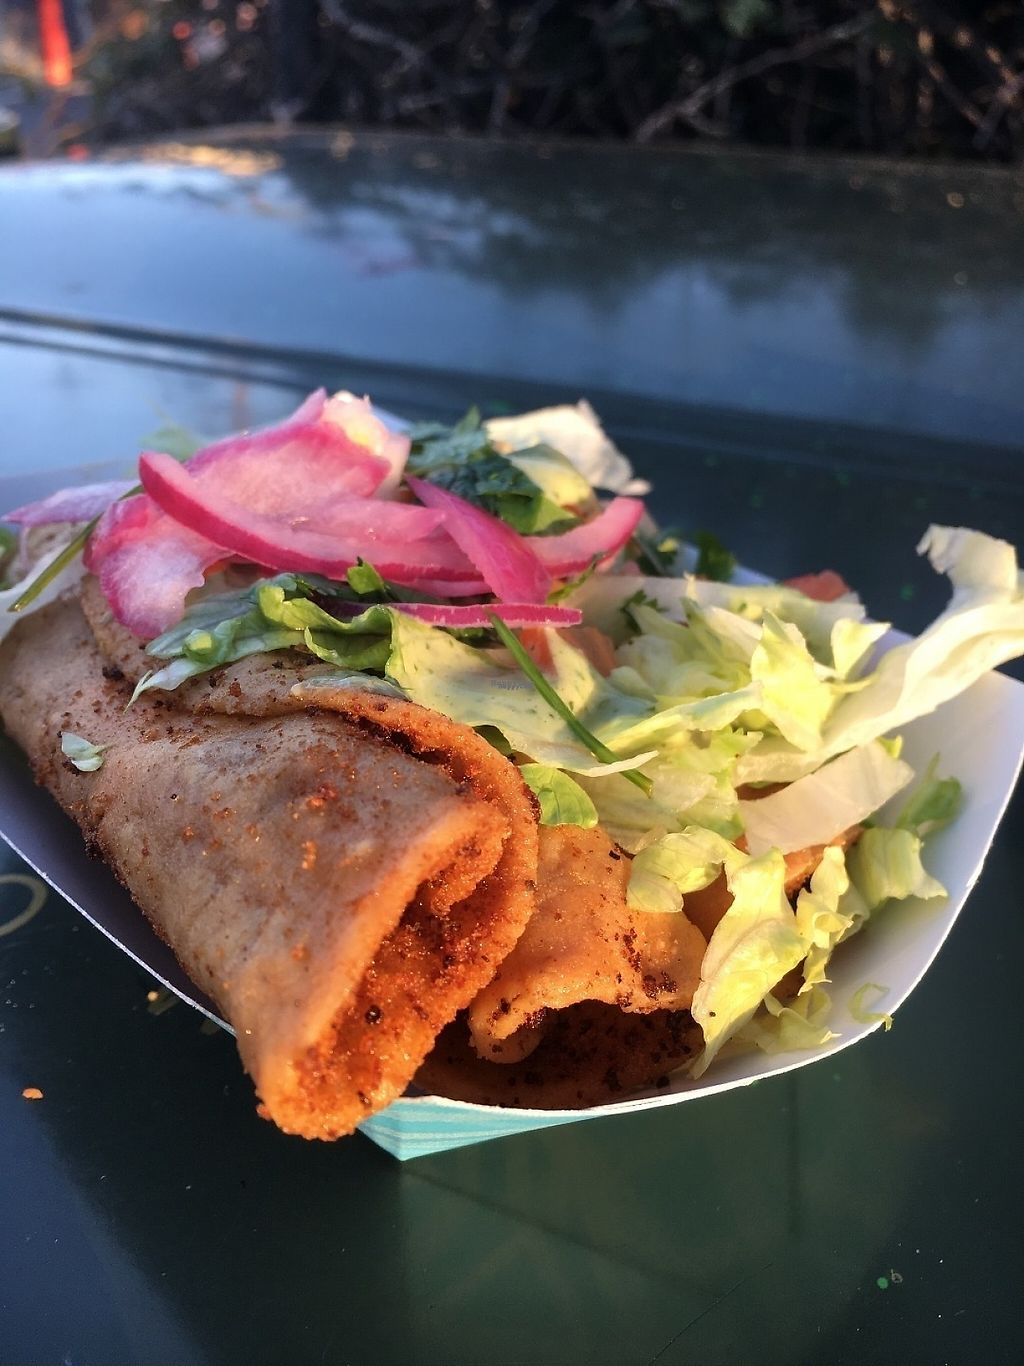 "Photo of El Veganito - Food Stall  by <a href=""/members/profile/oceansidevegan"">oceansidevegan</a> <br/>Potato Tacos <br/> March 10, 2017  - <a href='/contact/abuse/image/78906/234913'>Report</a>"